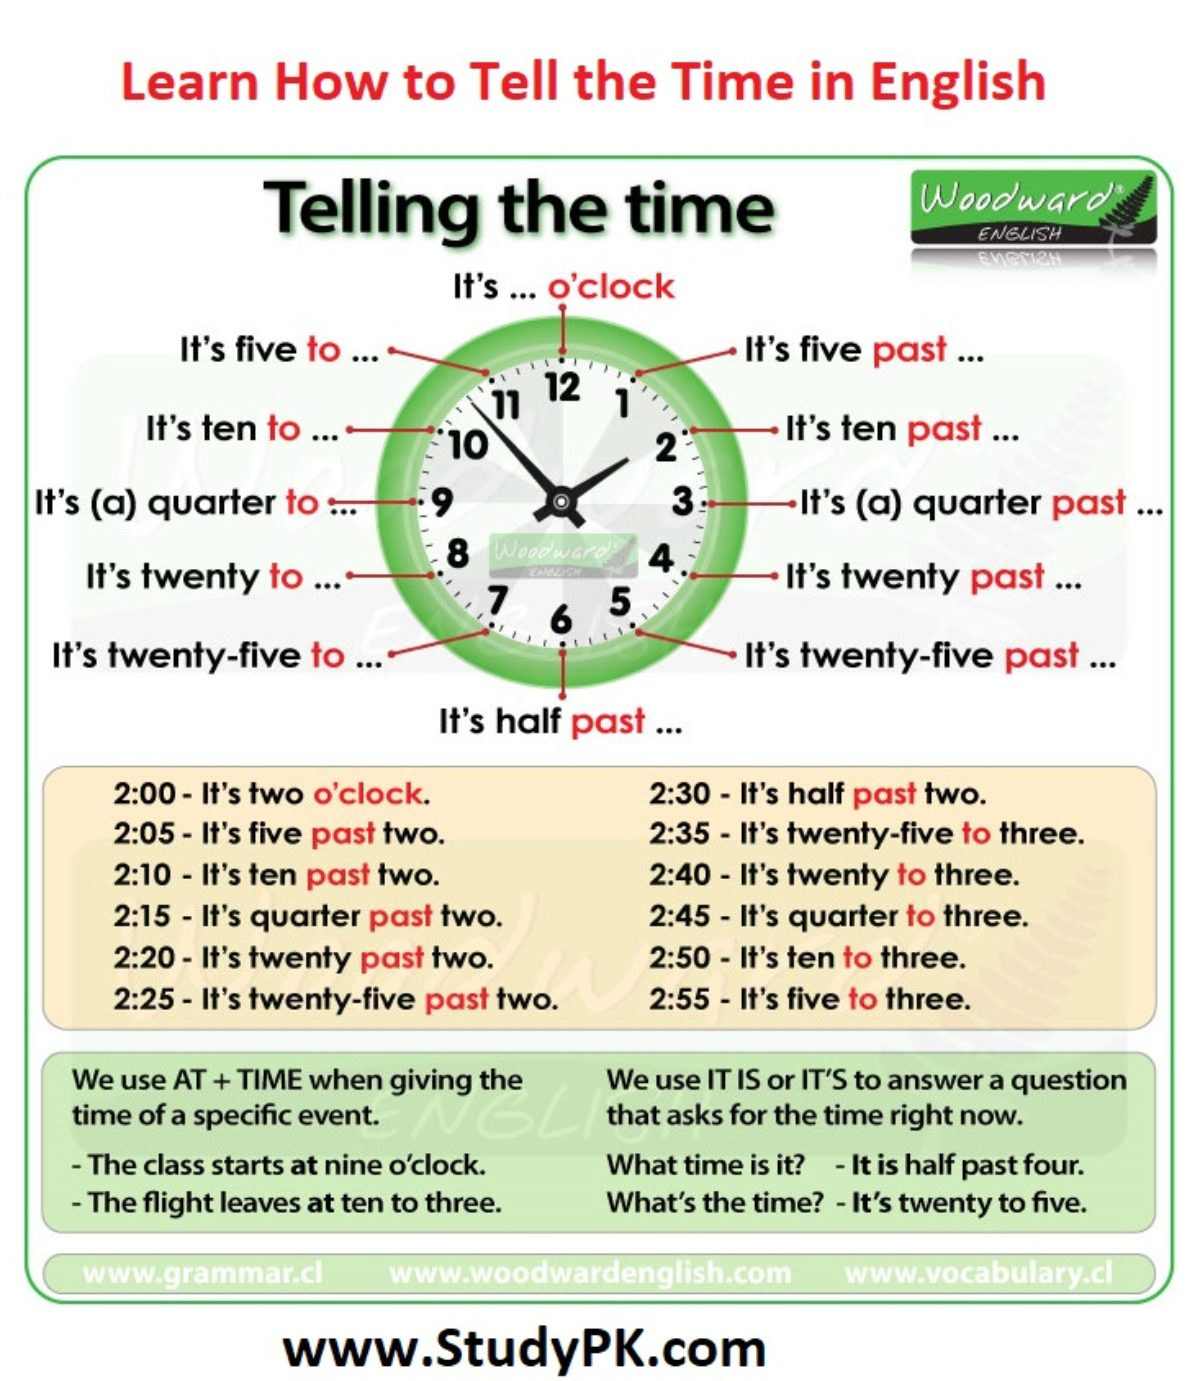 Fastest The Time In English Pdf